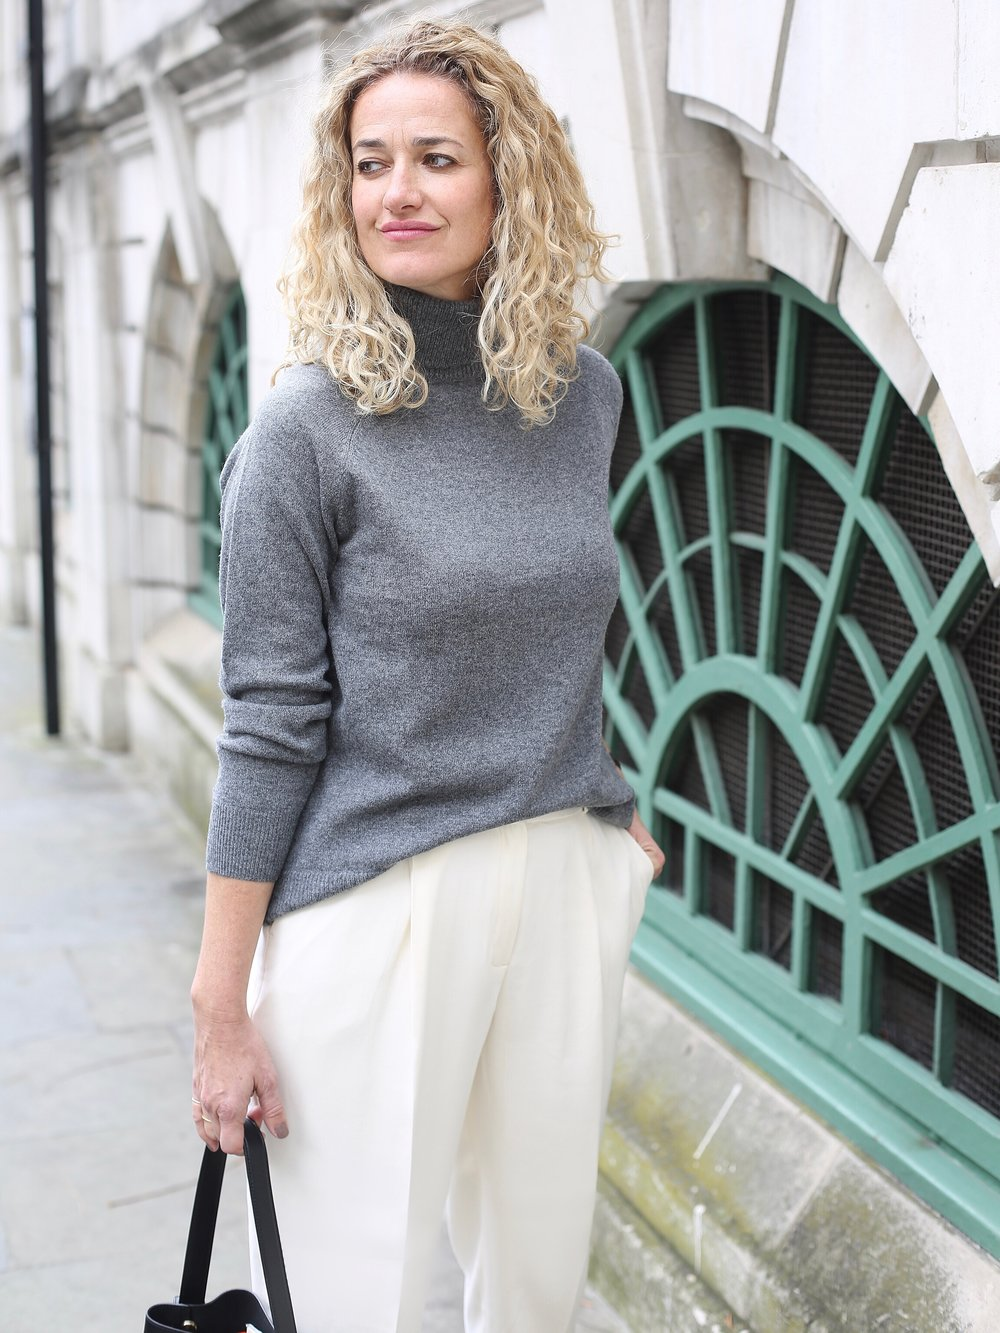 THE GROWN UP EDIT - Massimo Dutti grey roll neck sweater